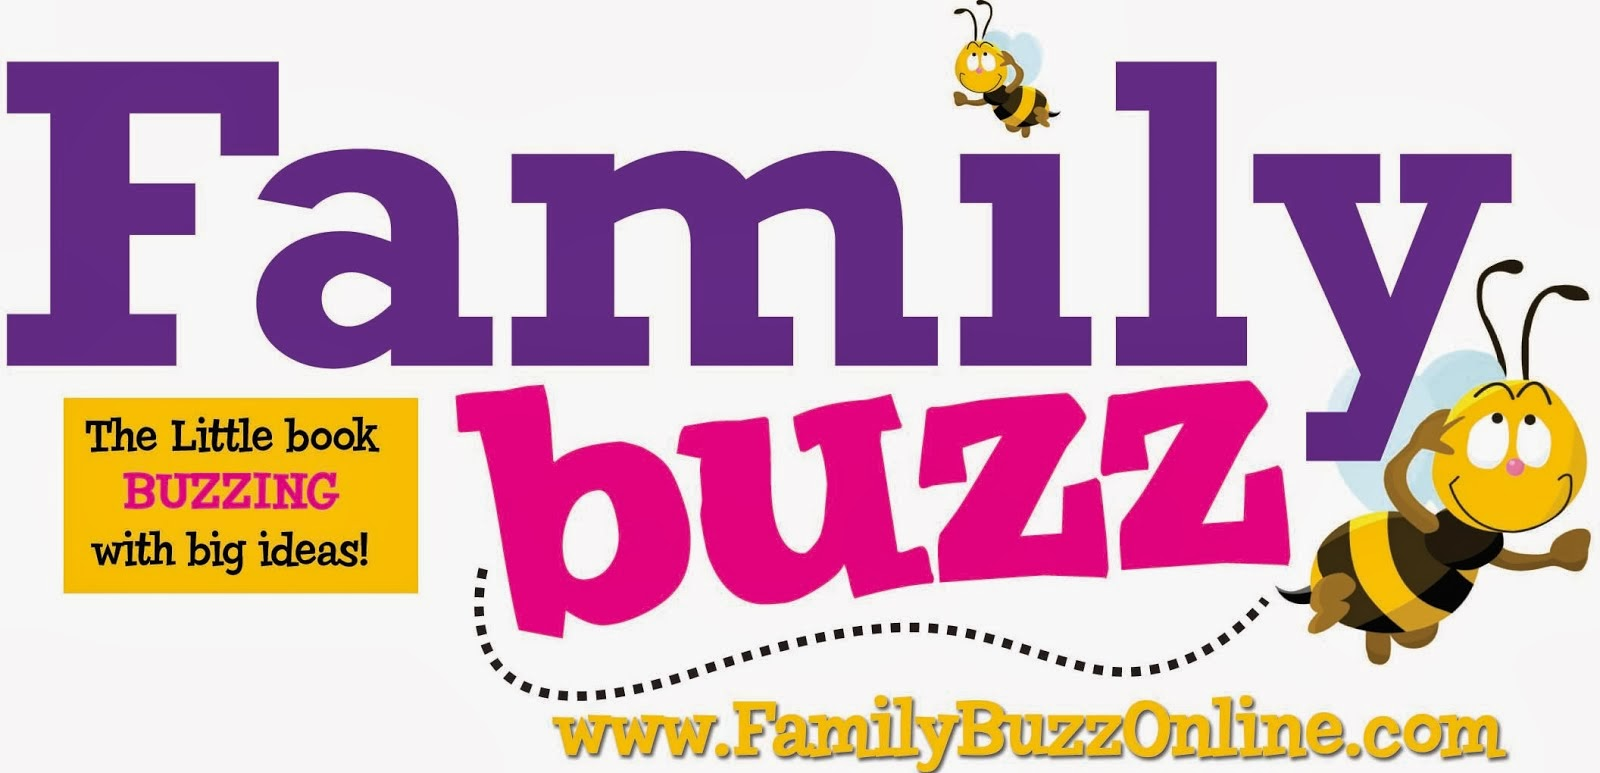 See Me on Family Buzz!